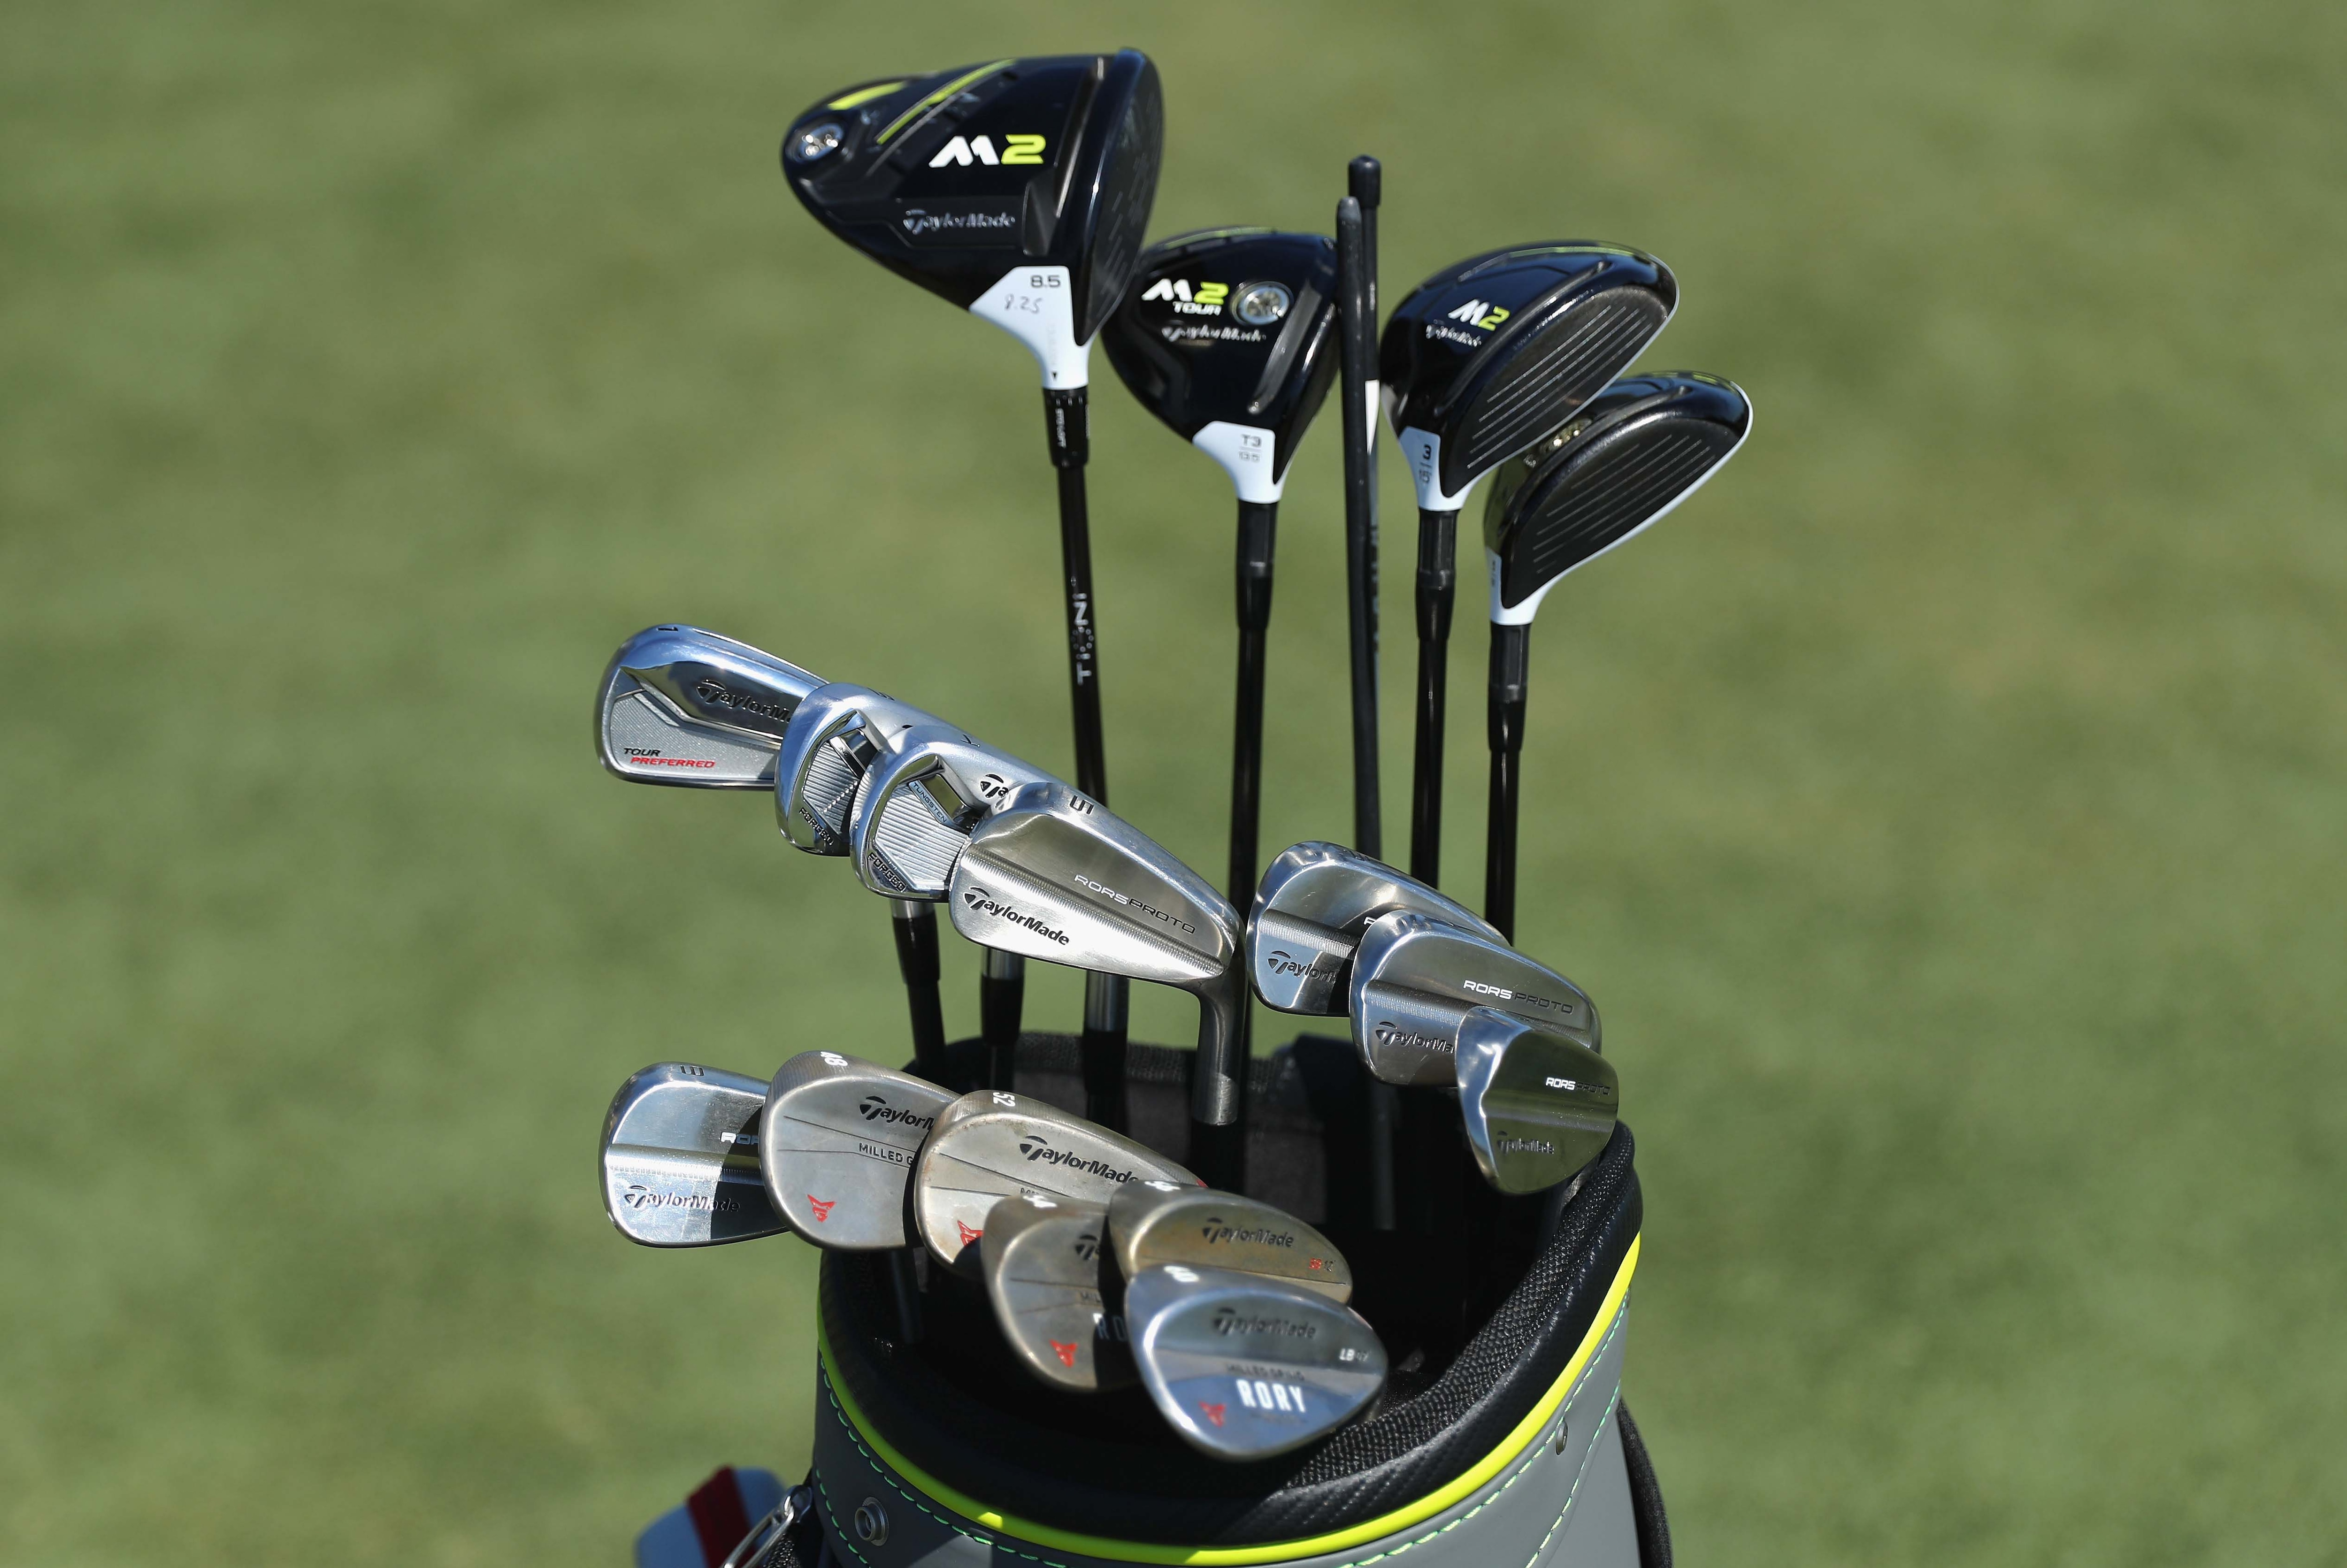 Rory McIlroy's new clubs